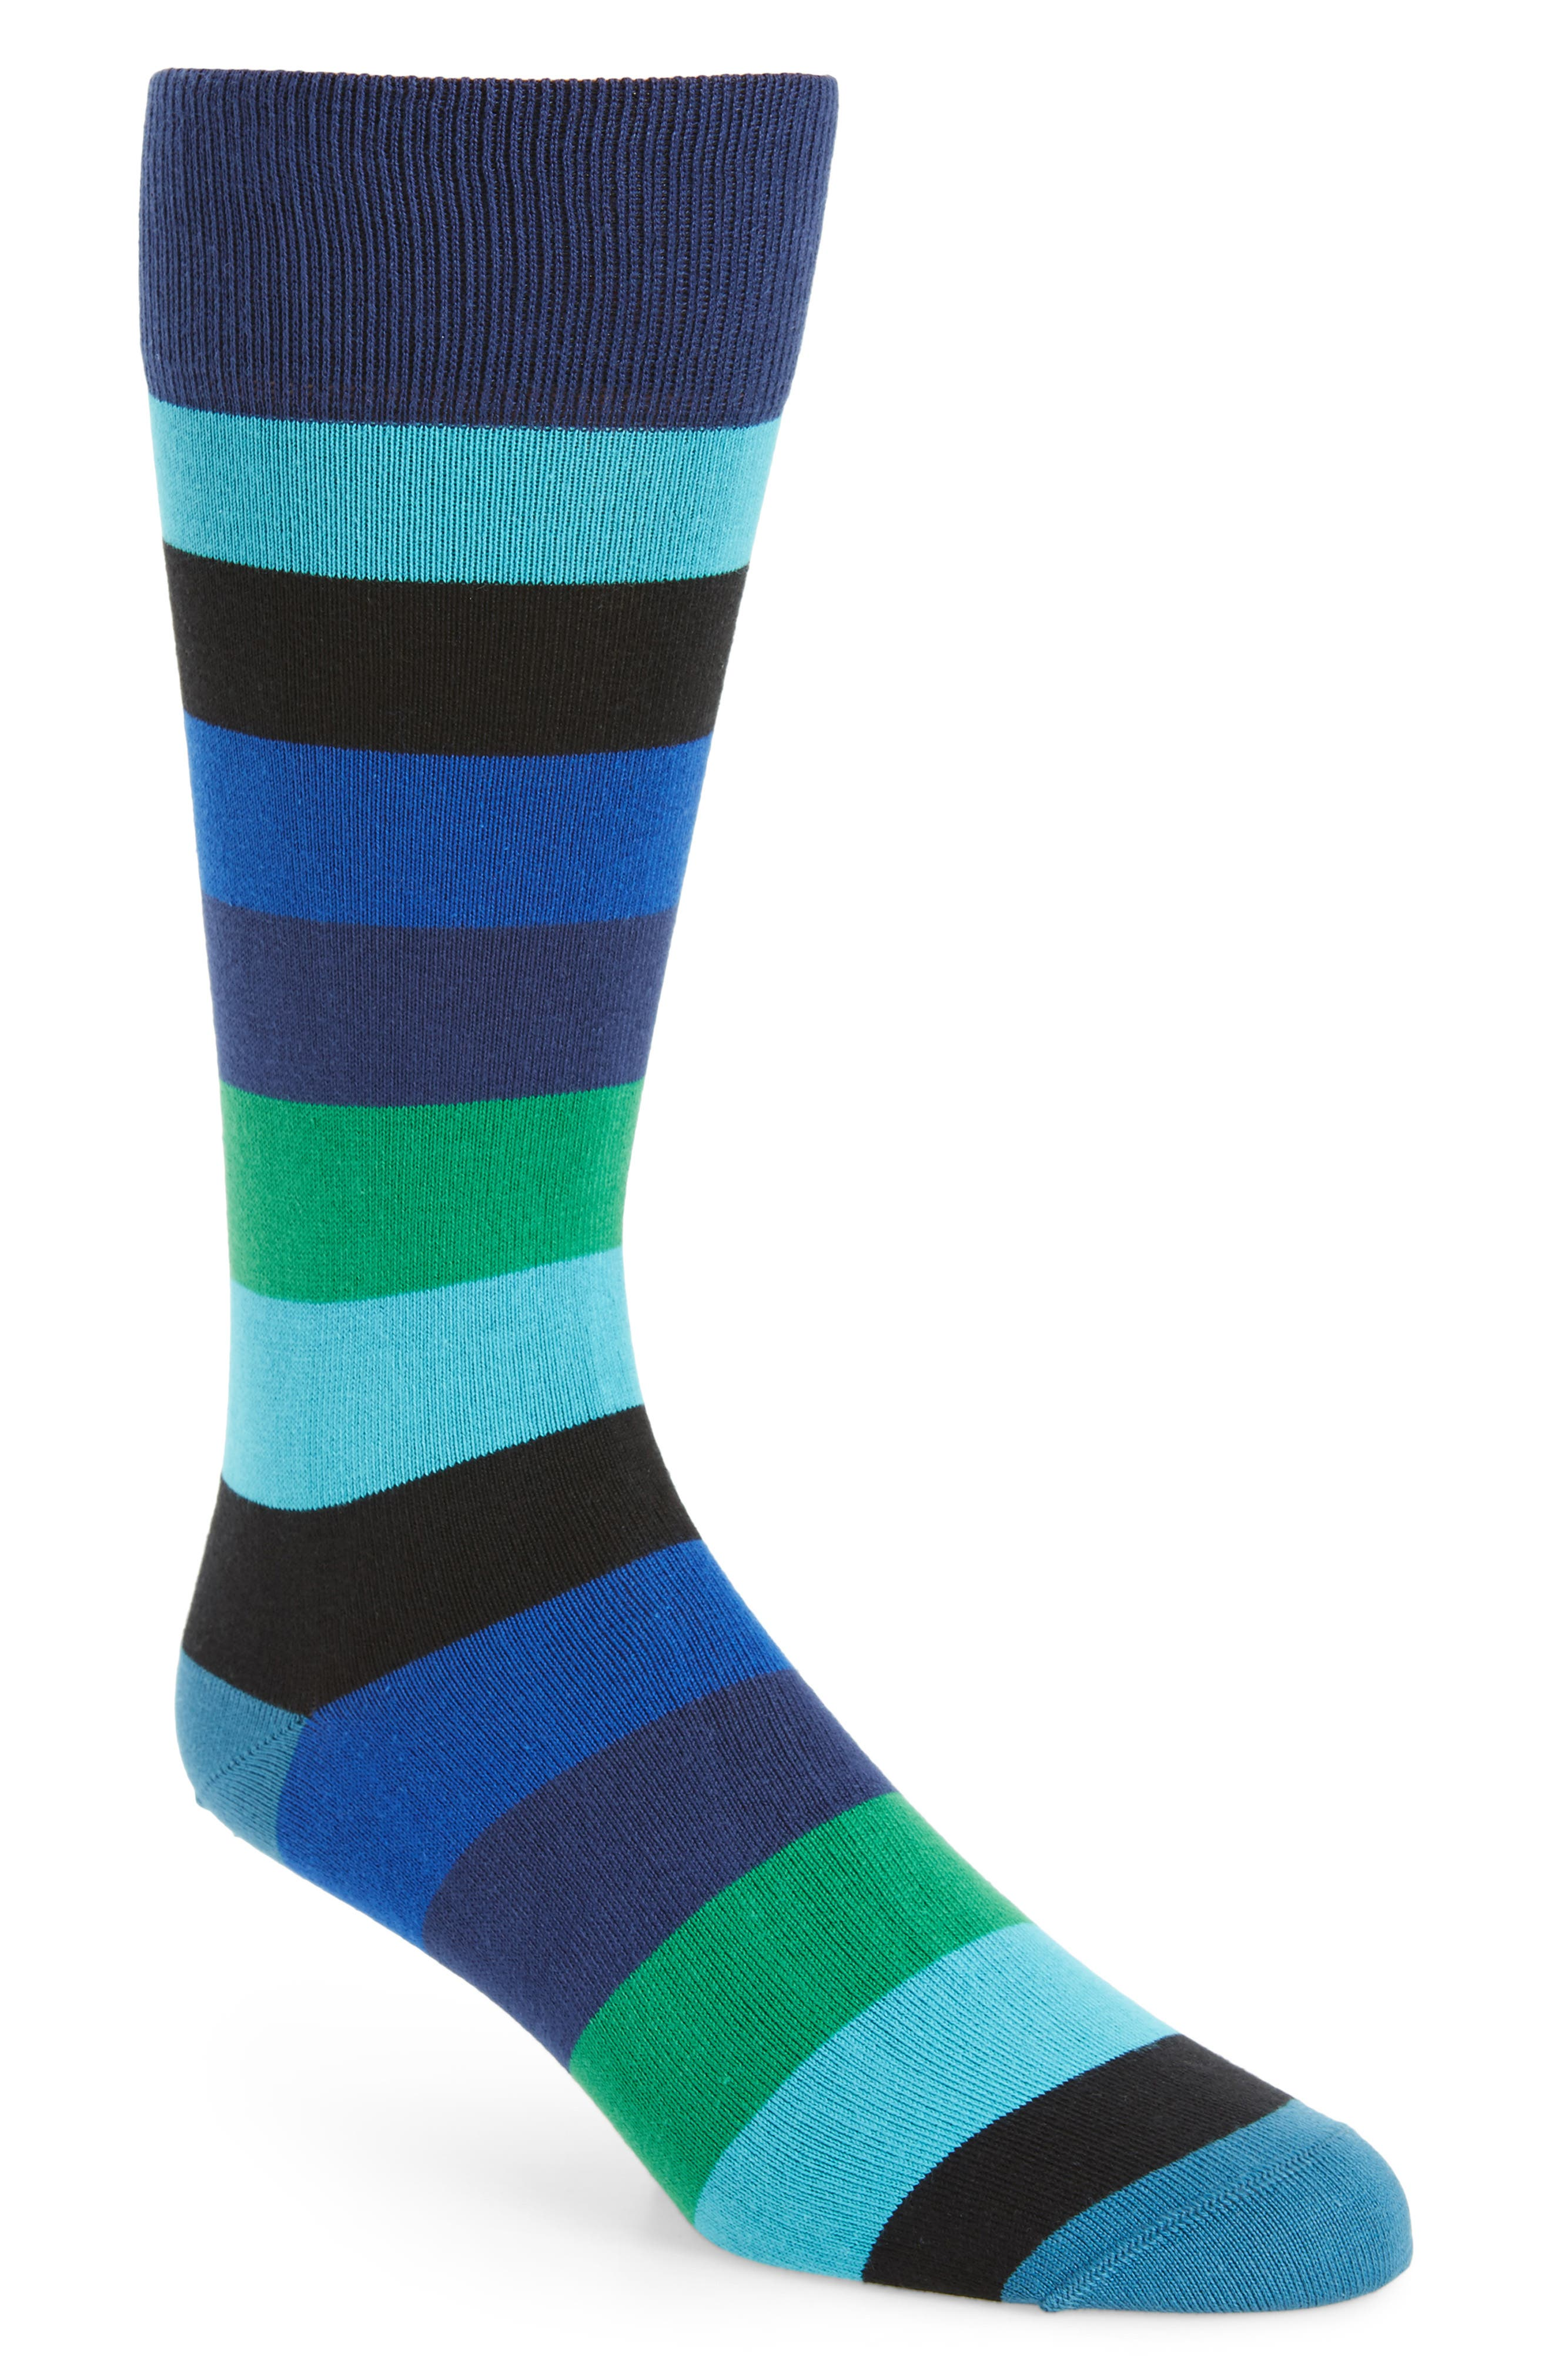 Buxton Stripe Socks,                         Main,                         color, Blue/ Green Multi